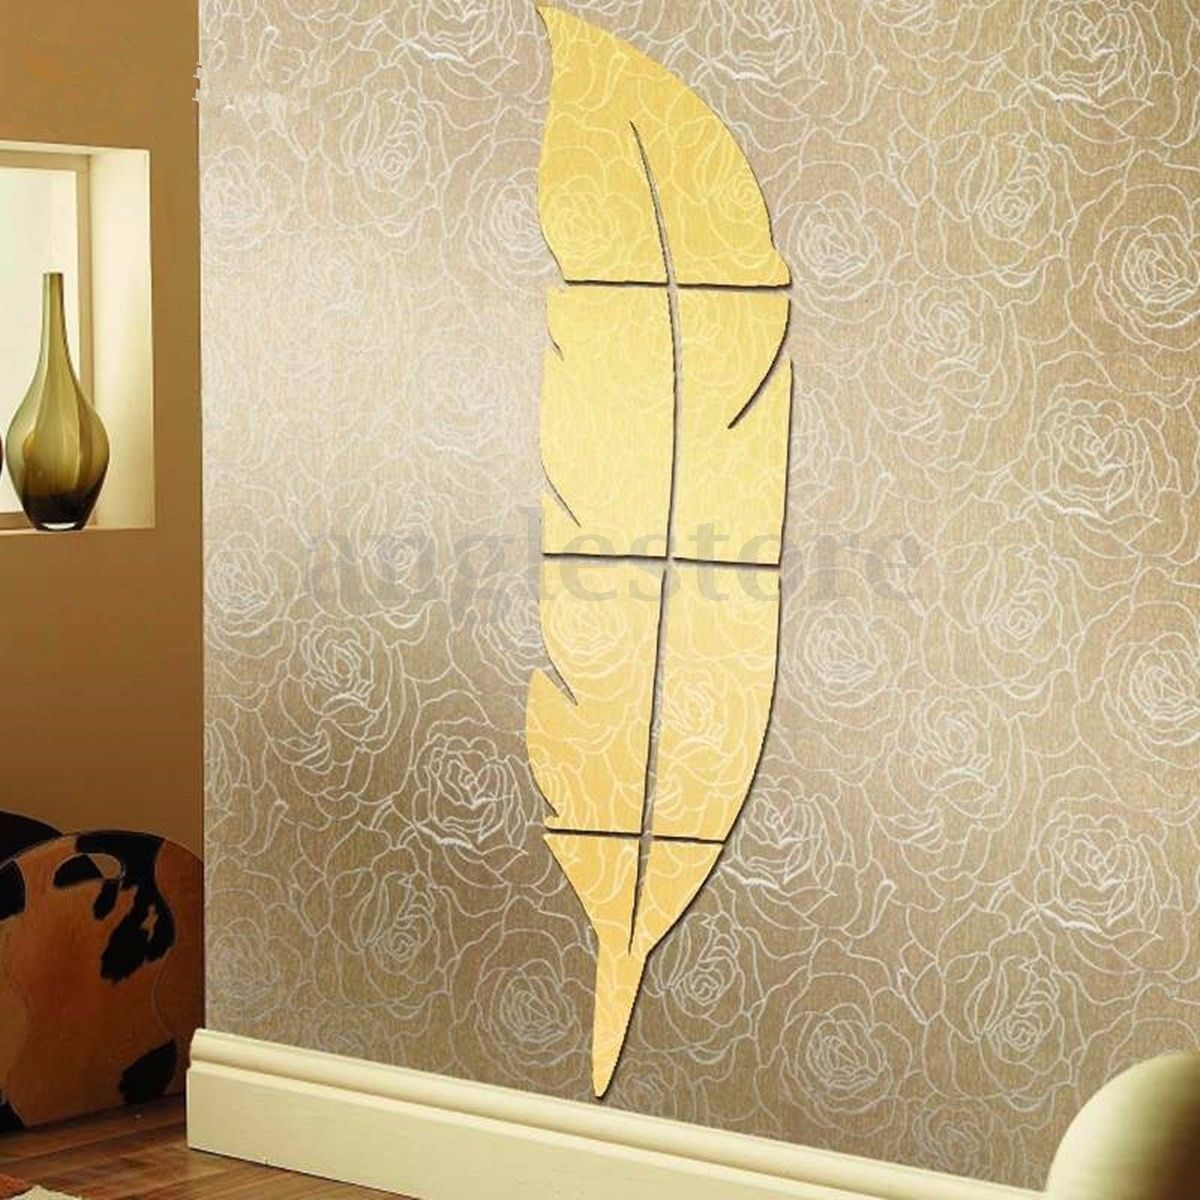 Left Feather Removable 3D Modern Mirror Wall Sticker Art Vinyl Decal ...